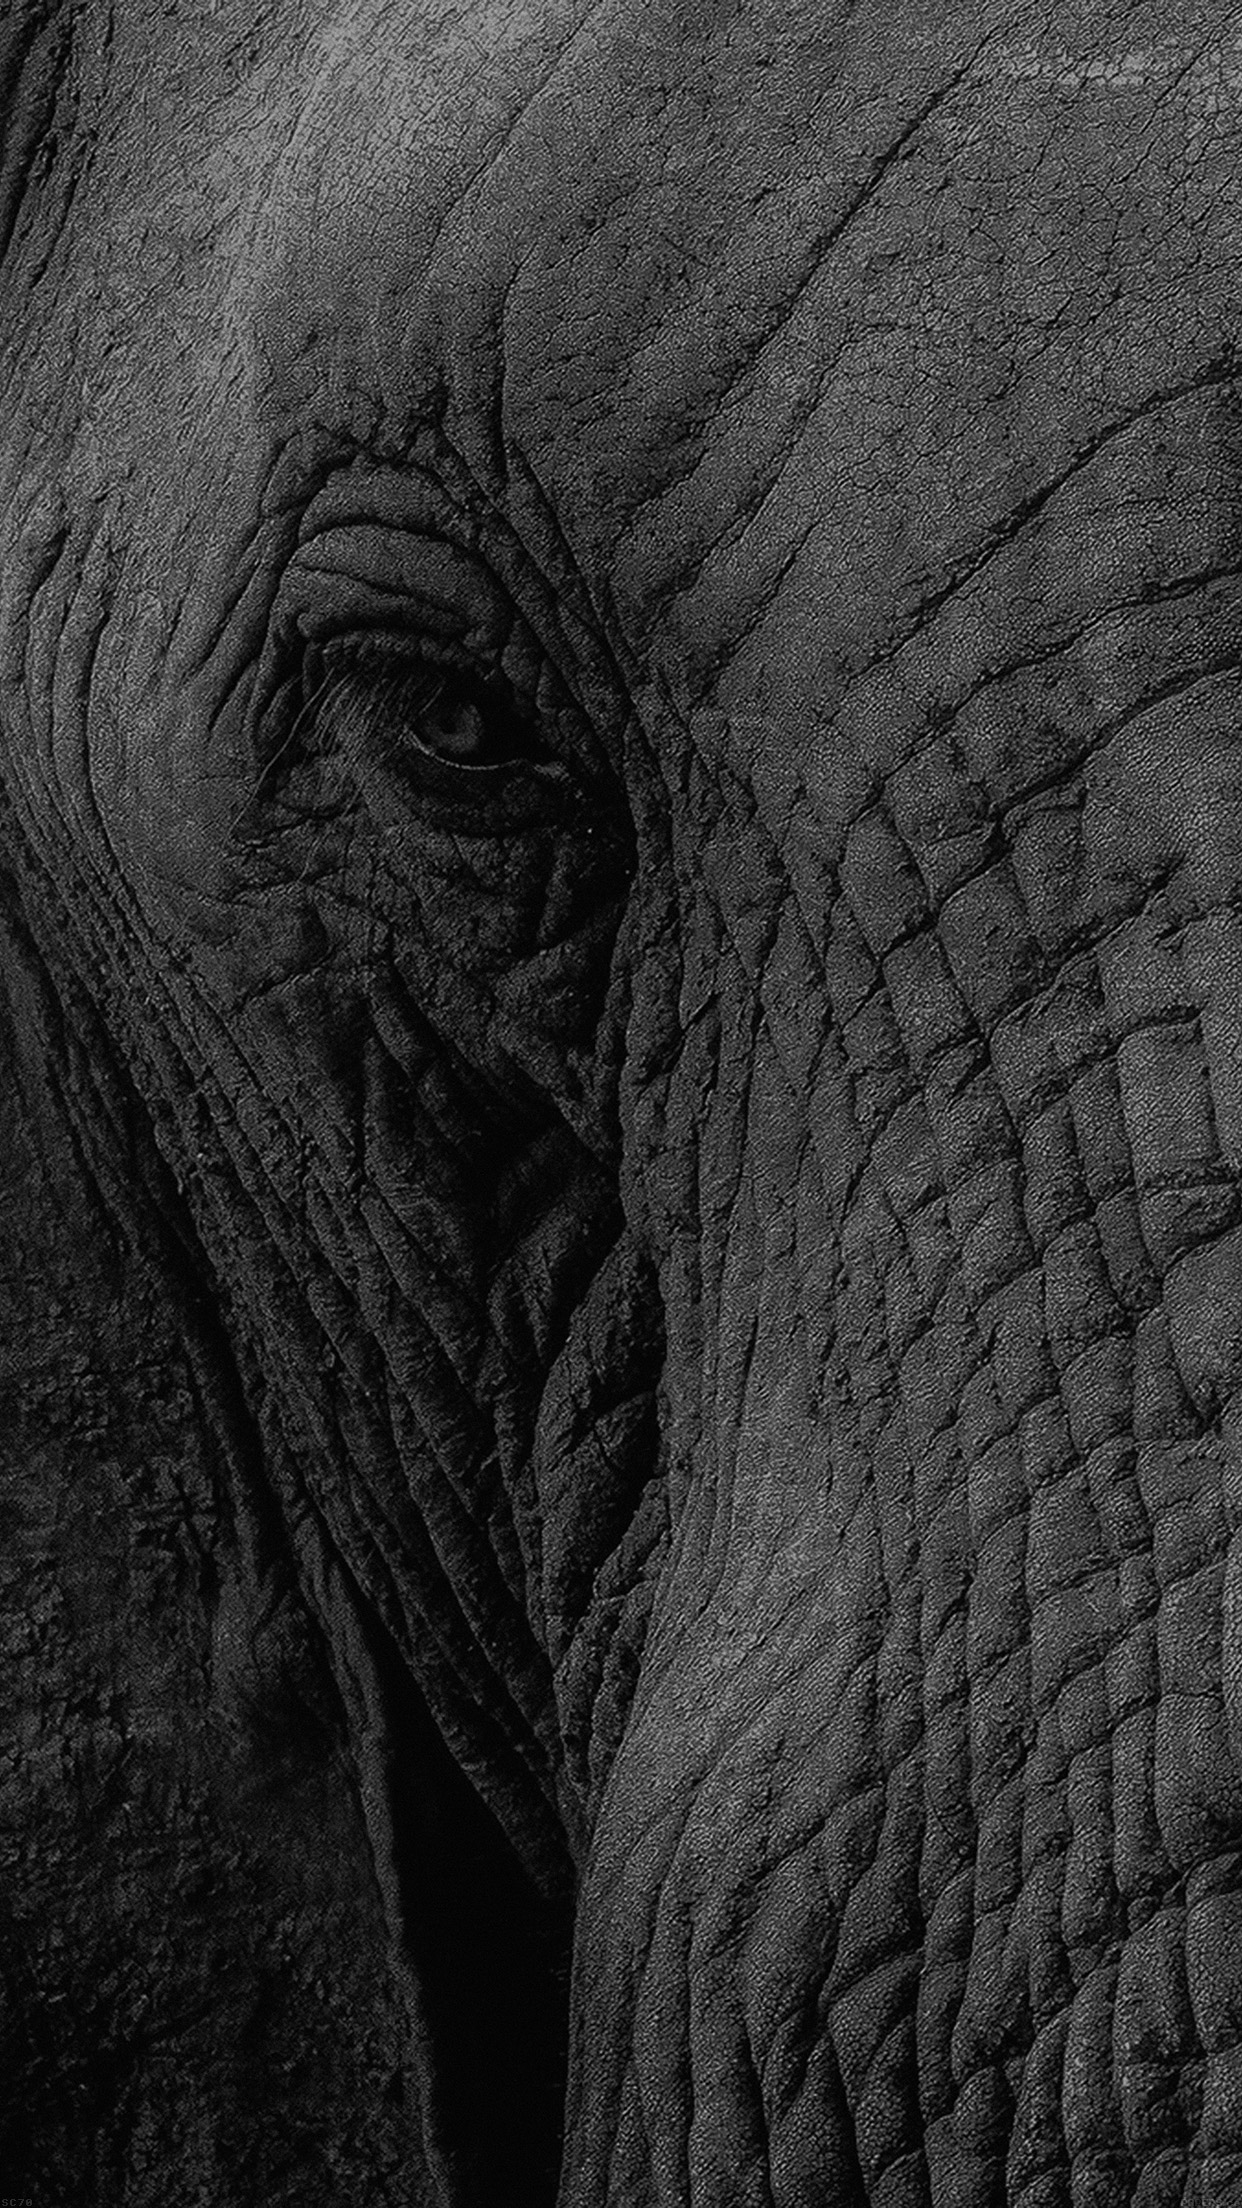 Elephant Eye Animal Nature Android wallpaper